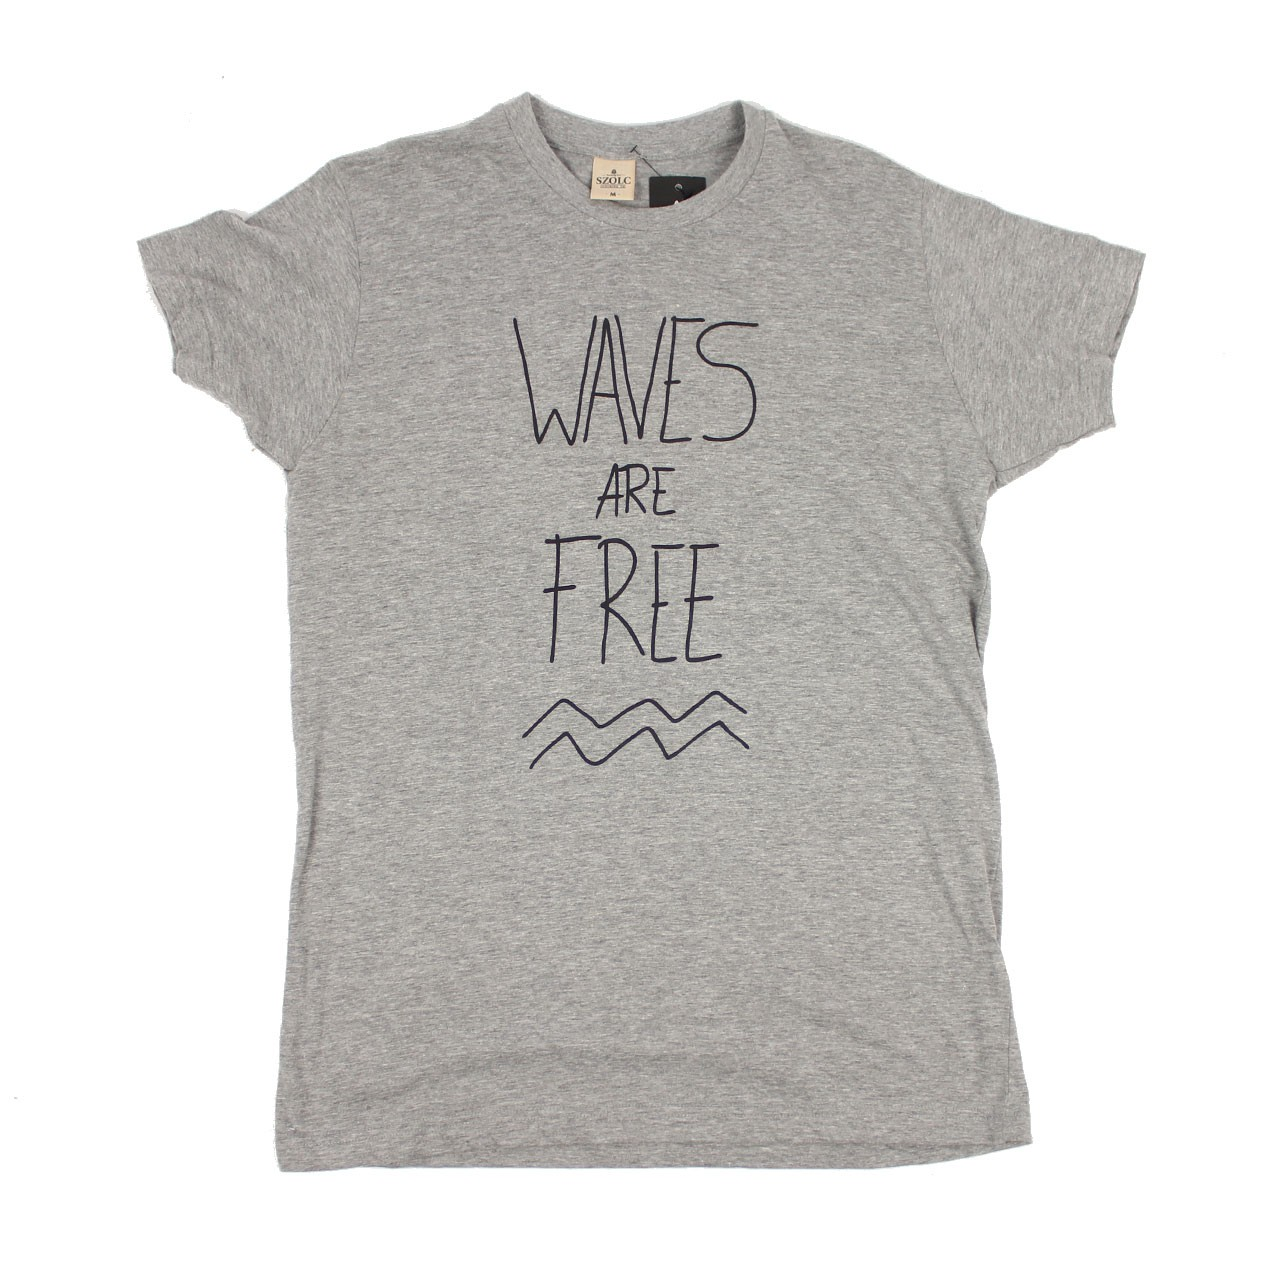 Waves Are Free Tshirt